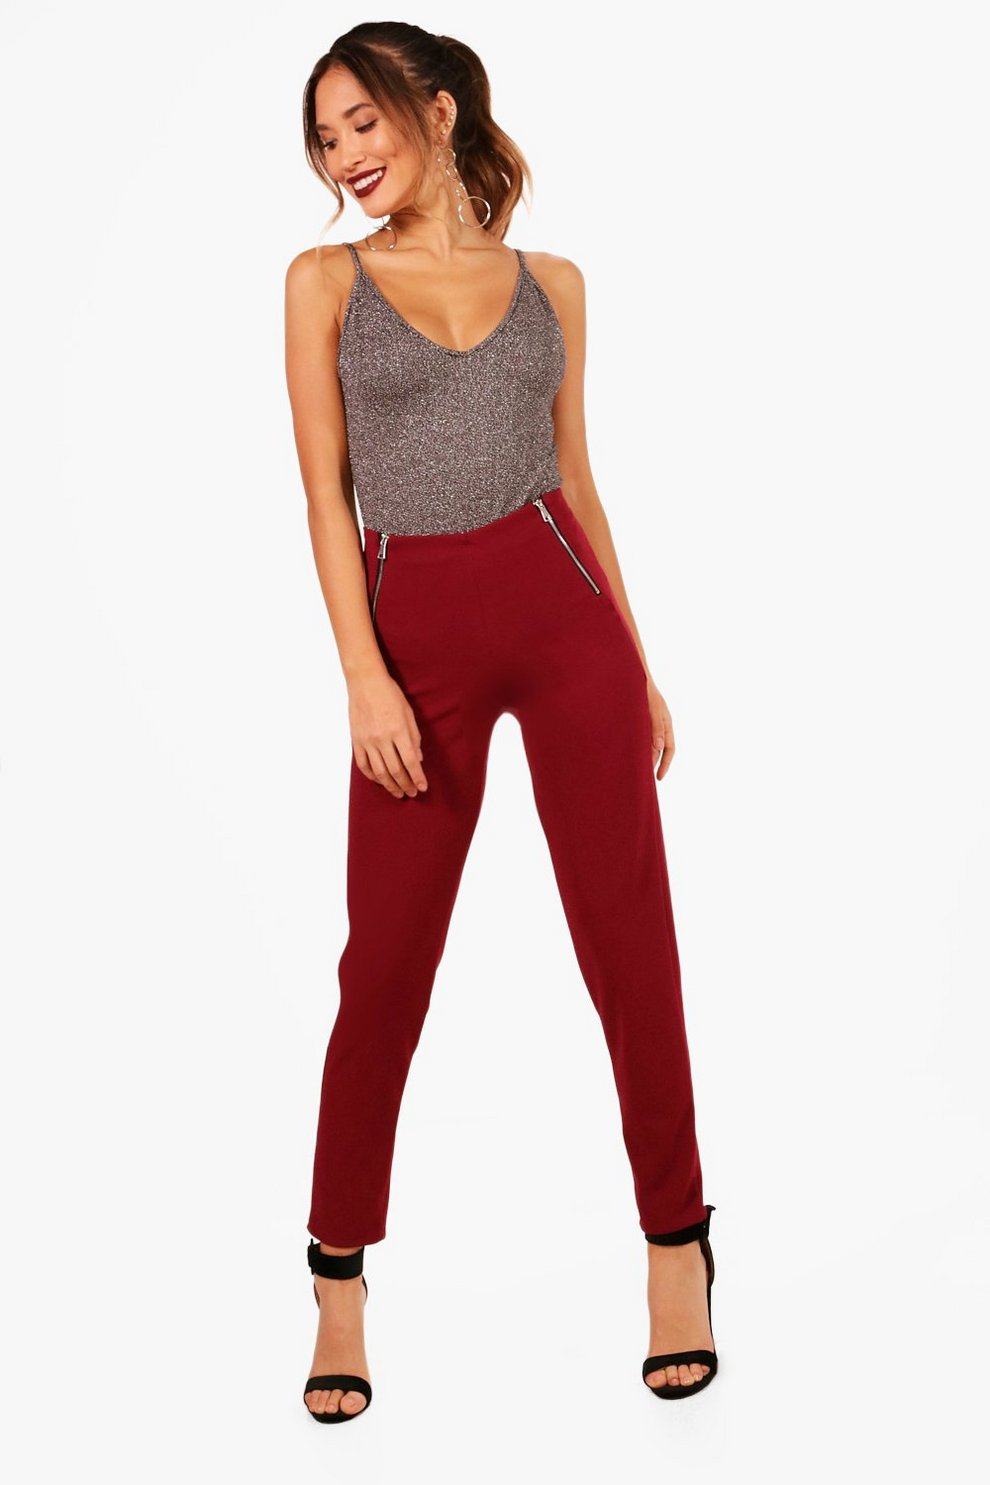 2018 Discount  Boohoo Tailored Skinny Trouser Buy Cheap Low Shipping oqkPLh